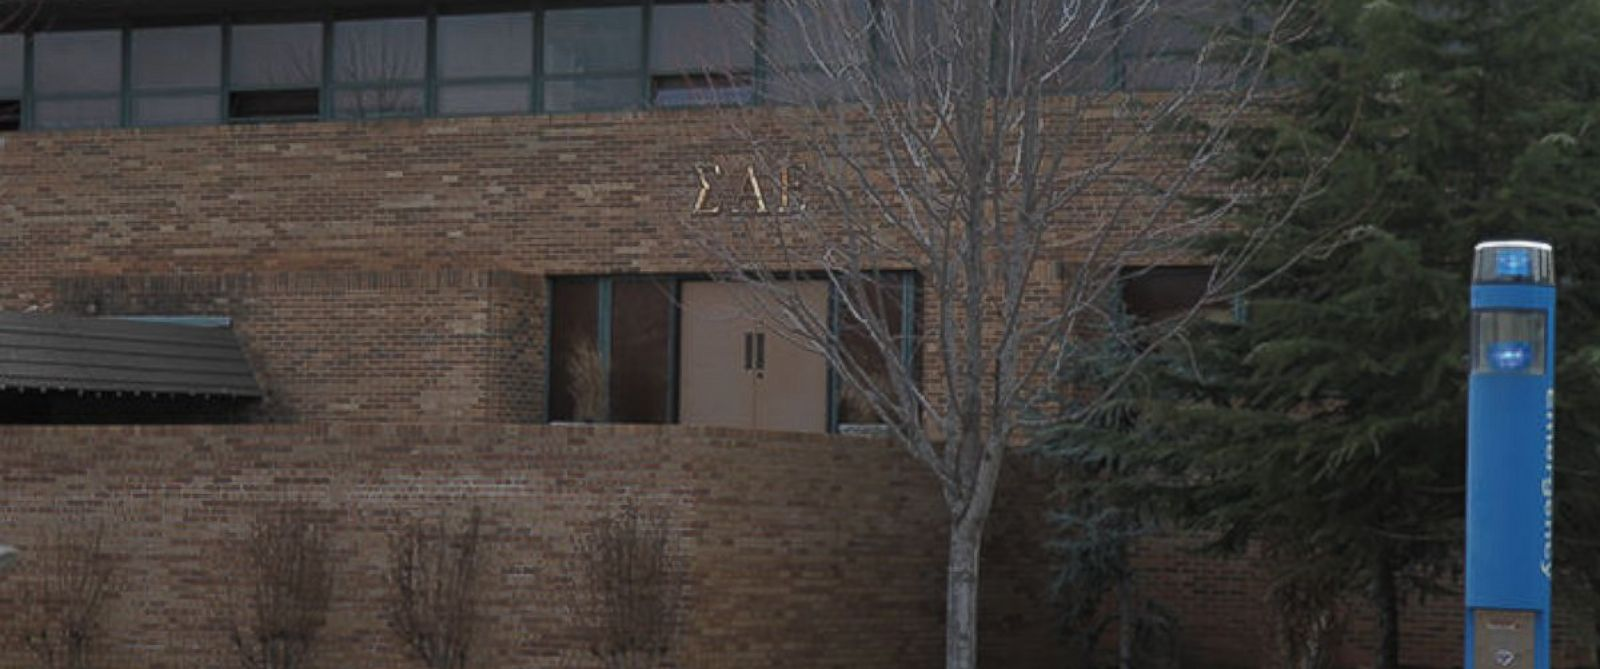 PHOTO: The Sigma Alpha Epsilon fraternity house is seen at the University of Oklahoma in Norman, Oklahoma.